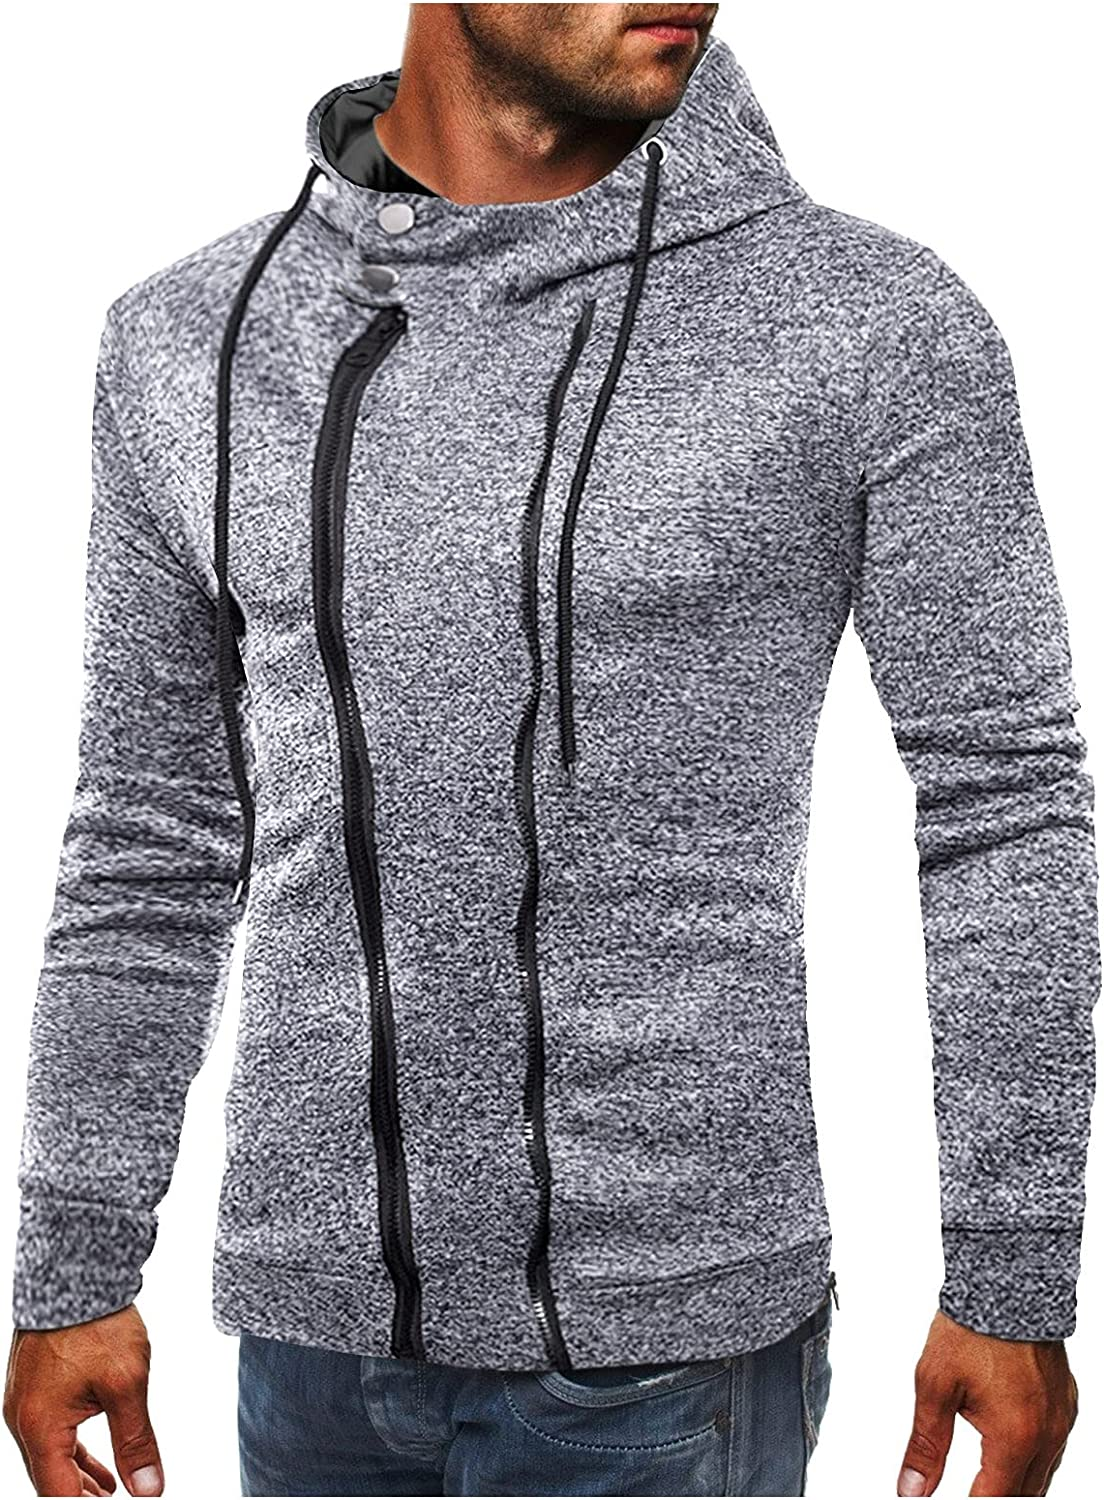 XXBR Patchwork Hoodies for Mens, Fall Color Block Stitching Hooded Sweatshirts Slim Fit Workout Sports Zipper Jackets